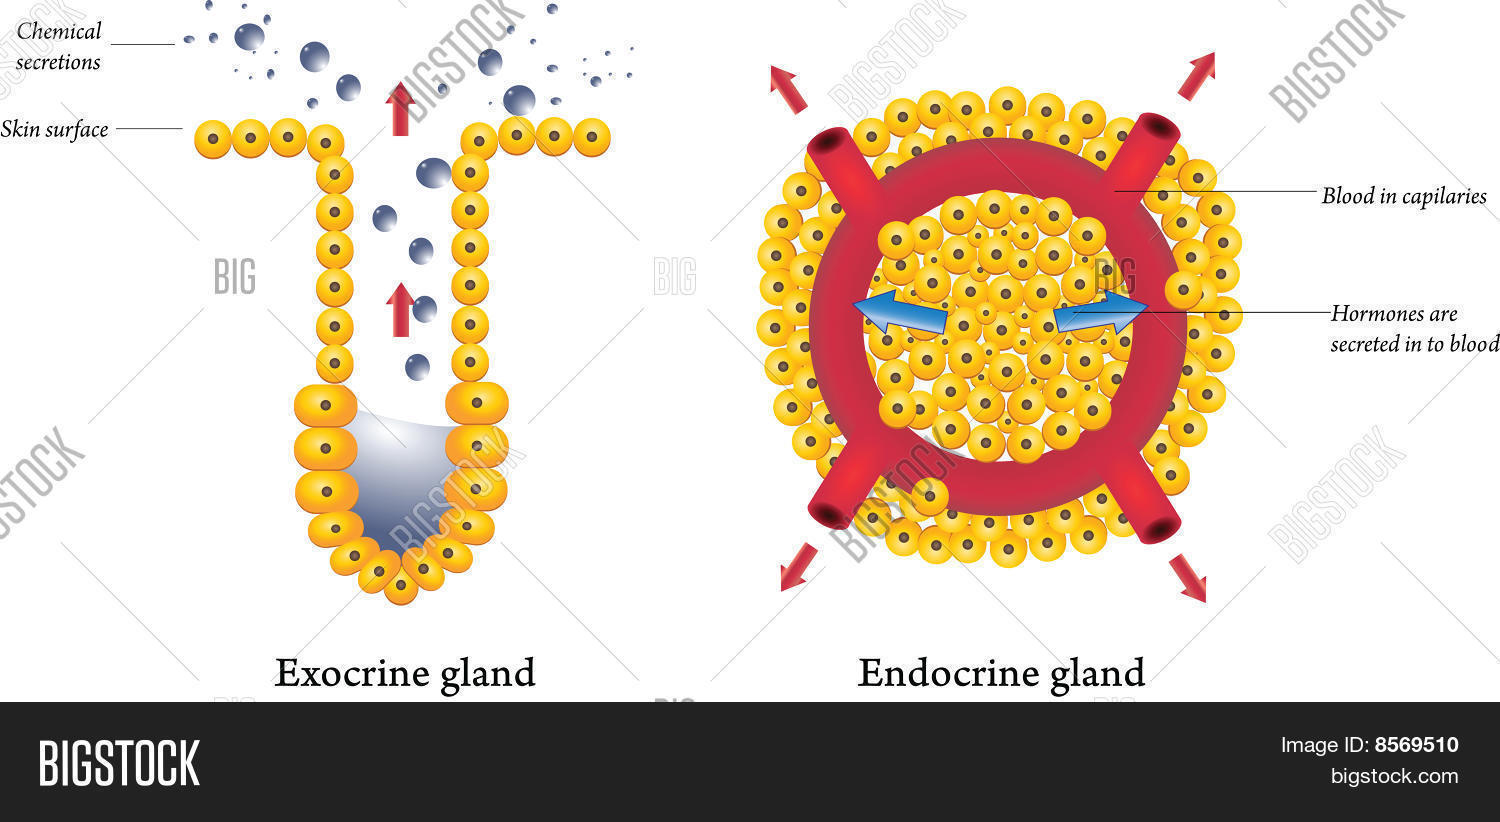 endocrine gland Although we rarely think about them, the glands of the endocrine system and the hormones they release influence almost every cell, organ, and function of our bodies.